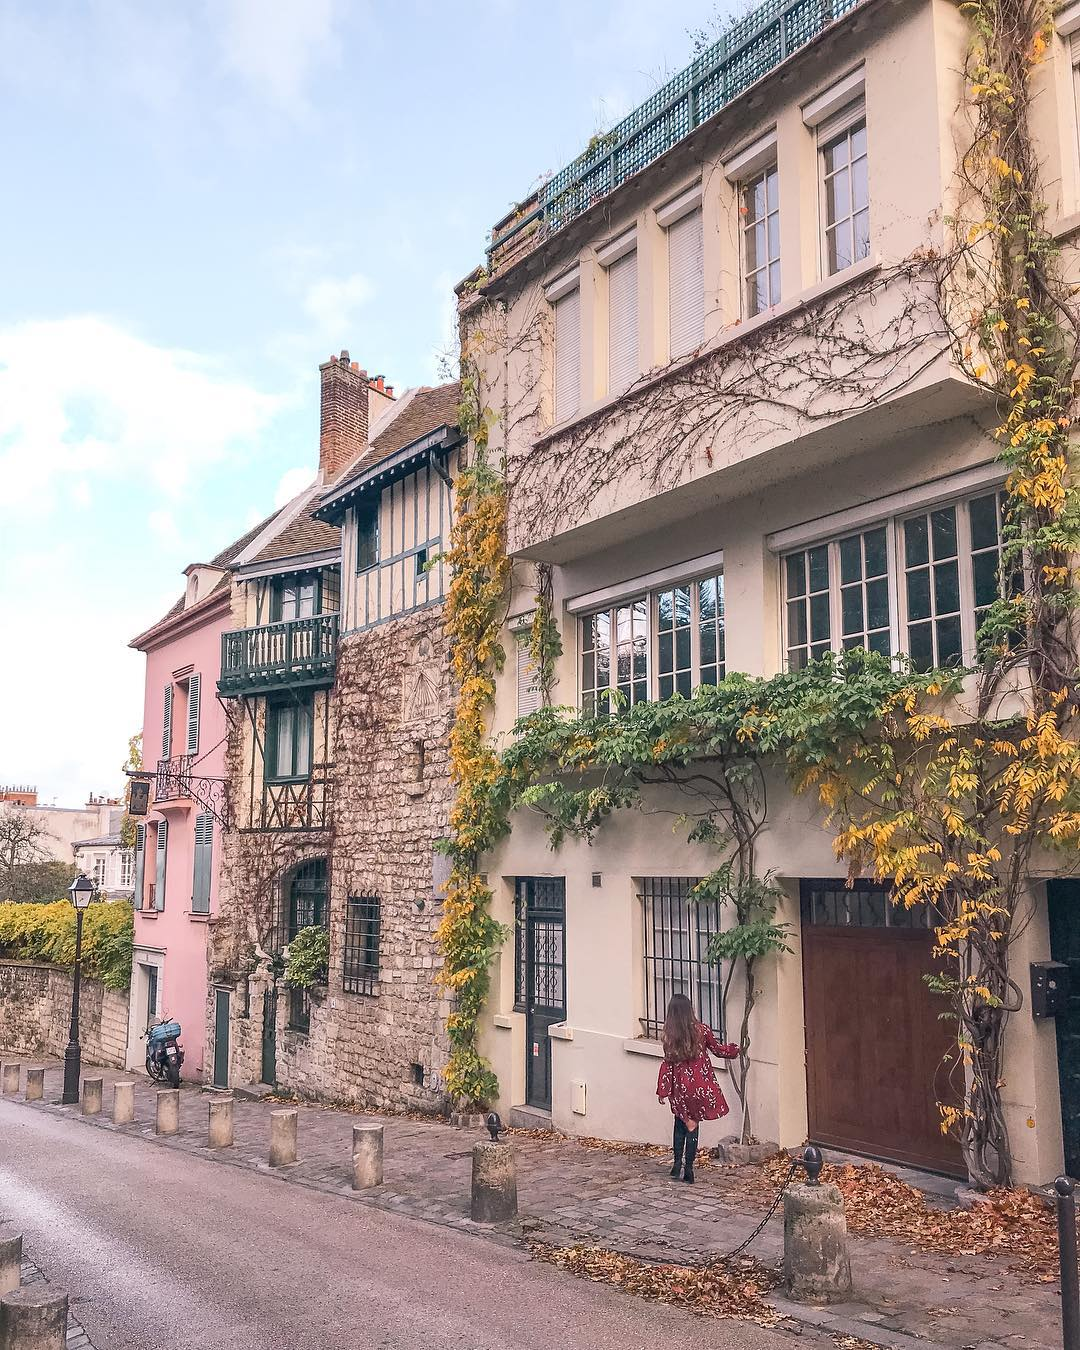 12 Best Photo Spots in Paris For Epic Instagram Shots- La Maison Rose